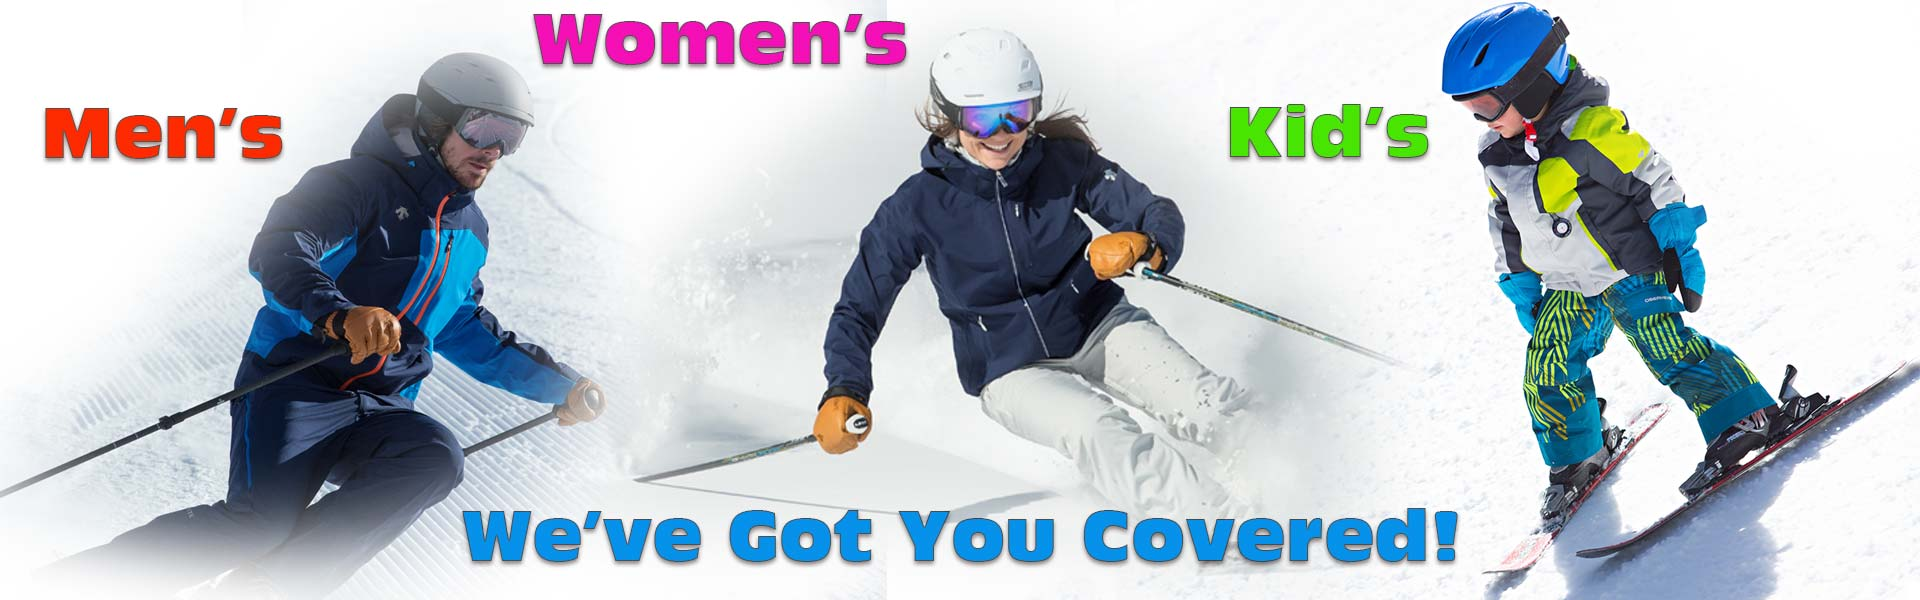 Stay Warm & Comfortable this winter with a jacket or pants from Bahnhof Sport - We've Got You Covered